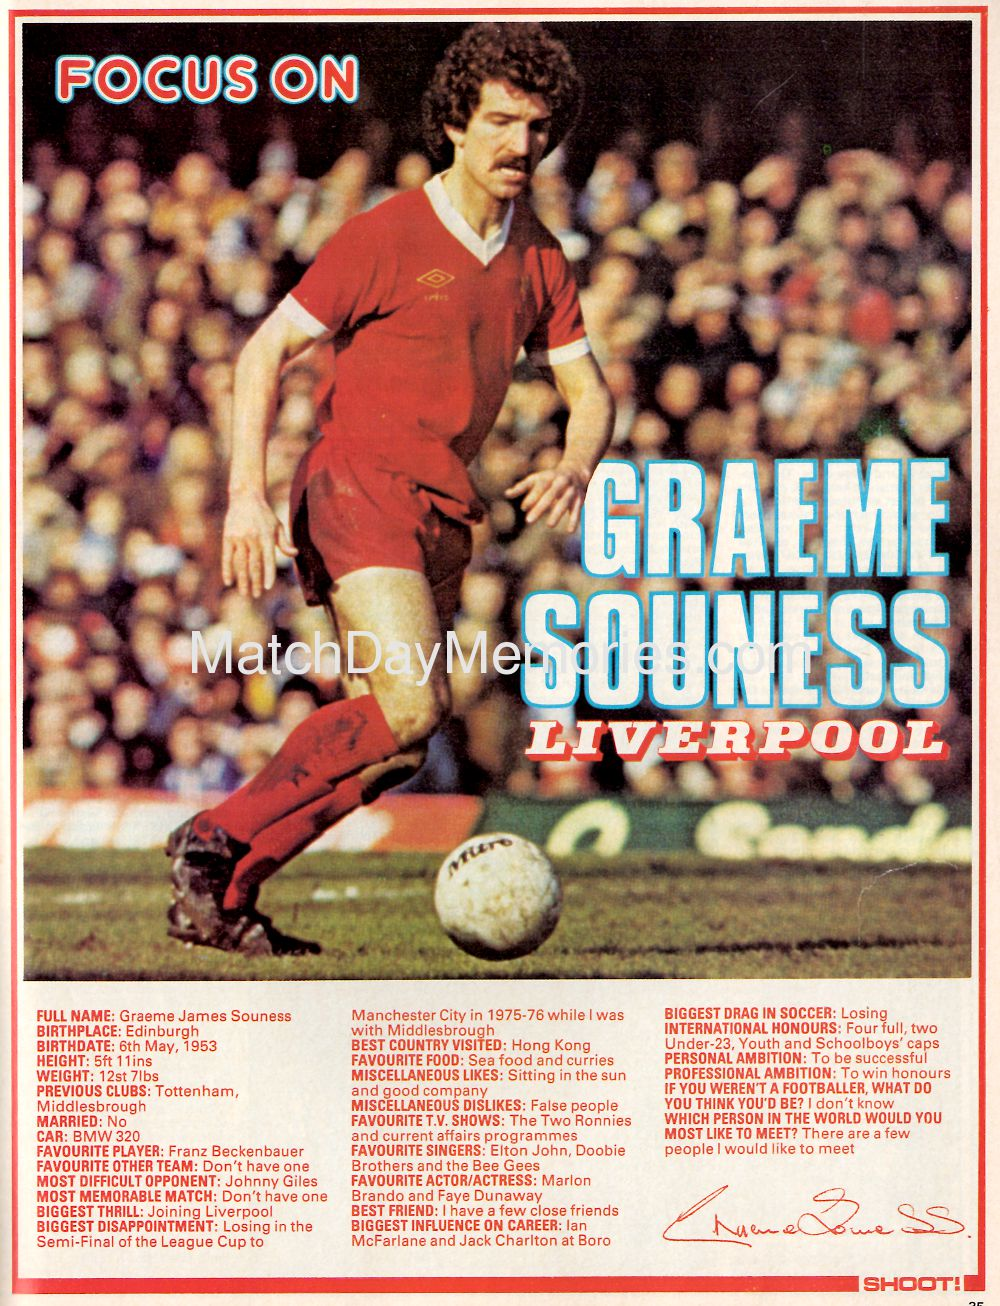 Liverpool career stats for Graeme Souness - LFChistory